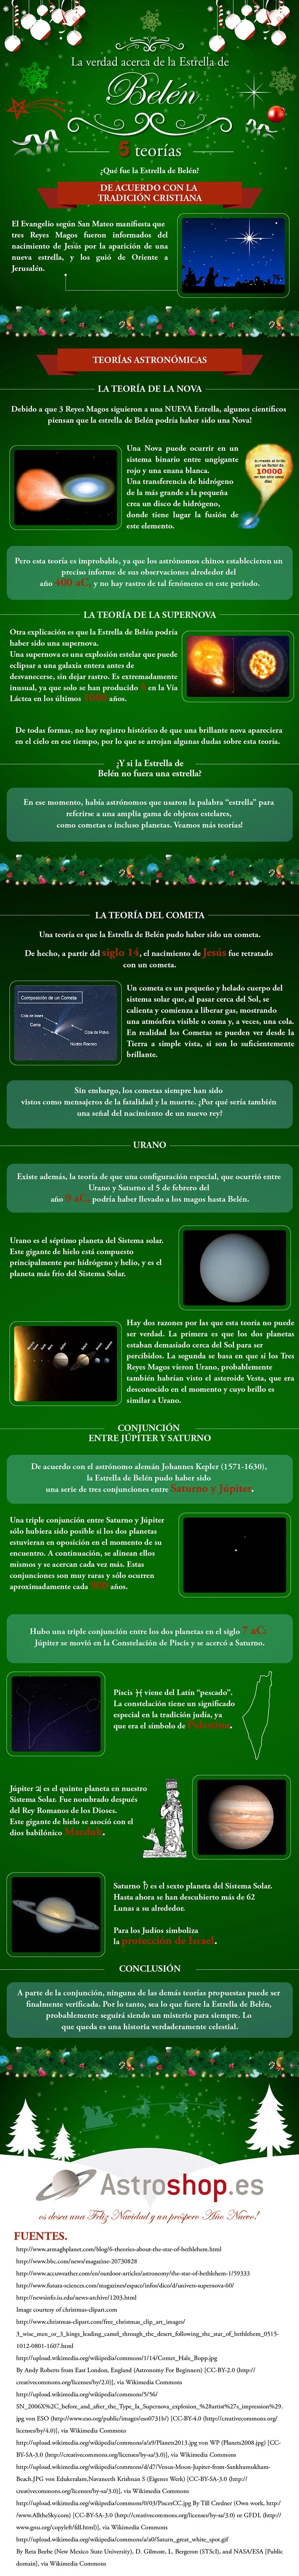 Infographic: What was the Star of Bethlehem?